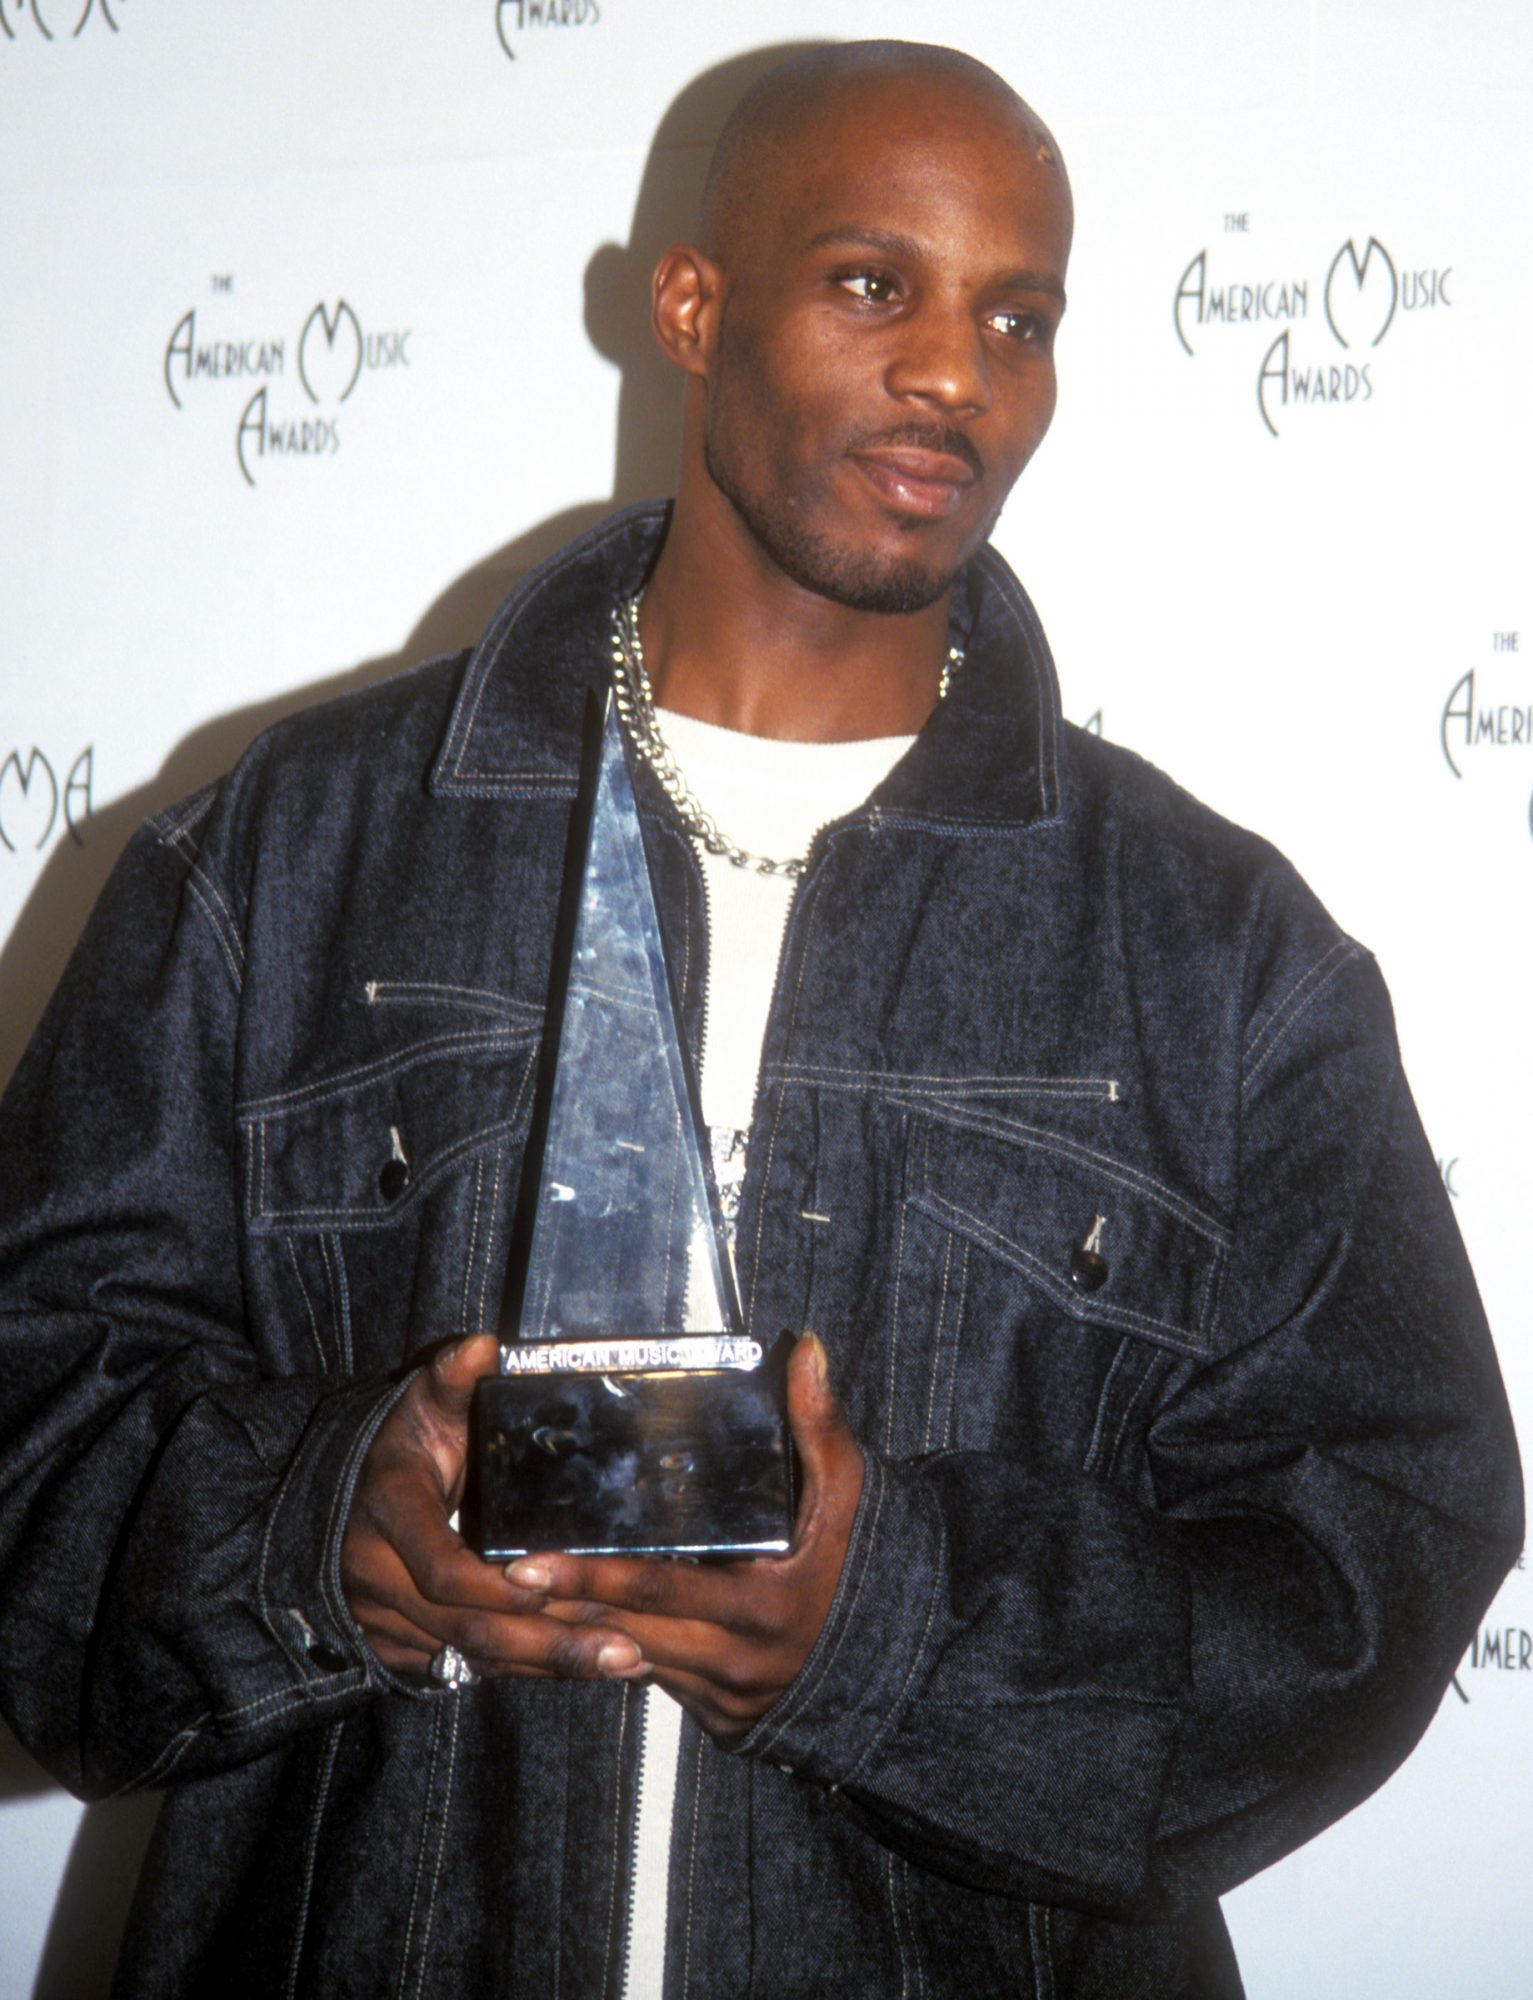 DMX American Music Awards